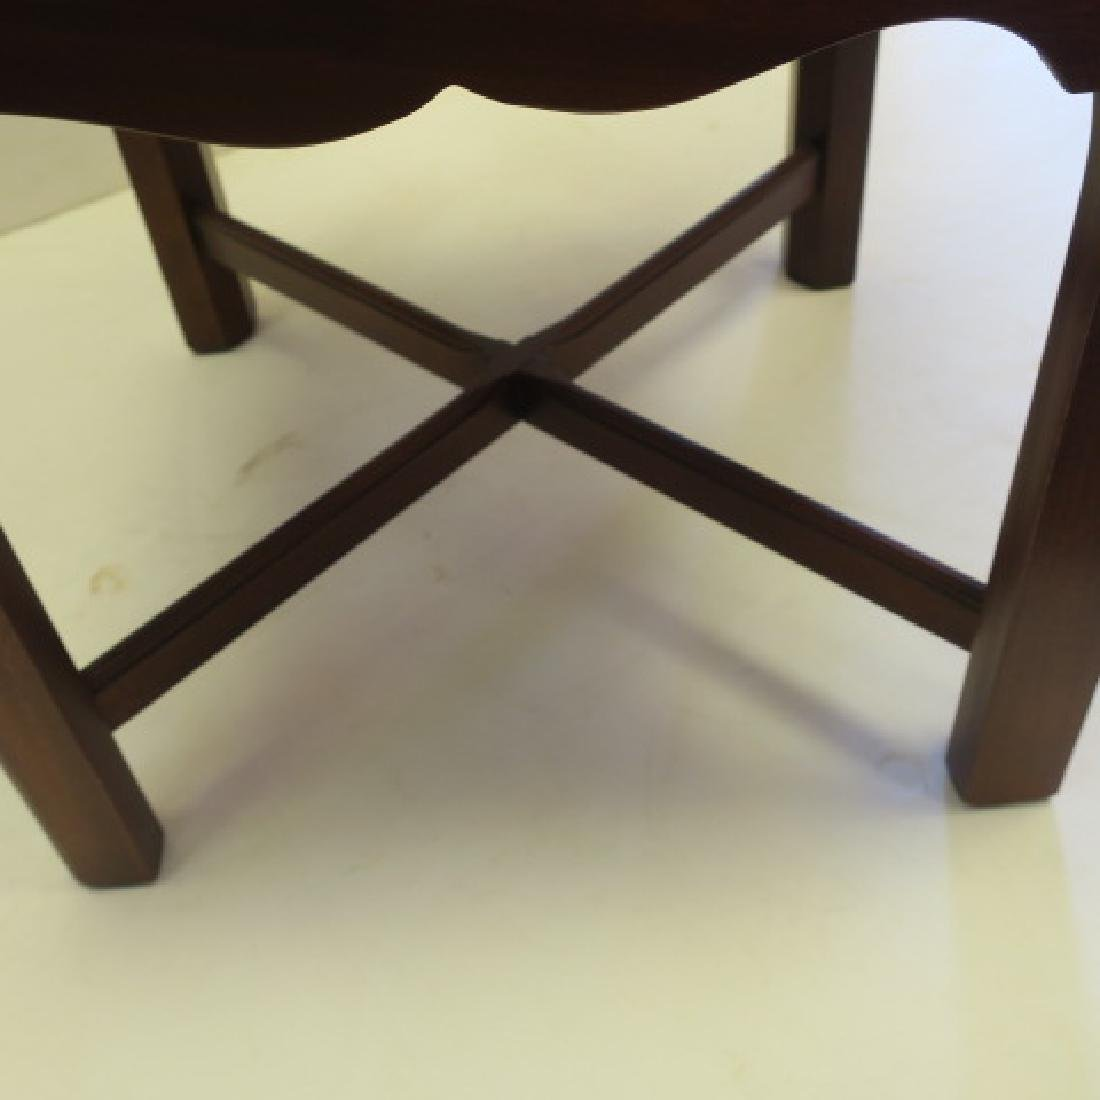 Mahogany Chippendale Style Corner Chair: - 4